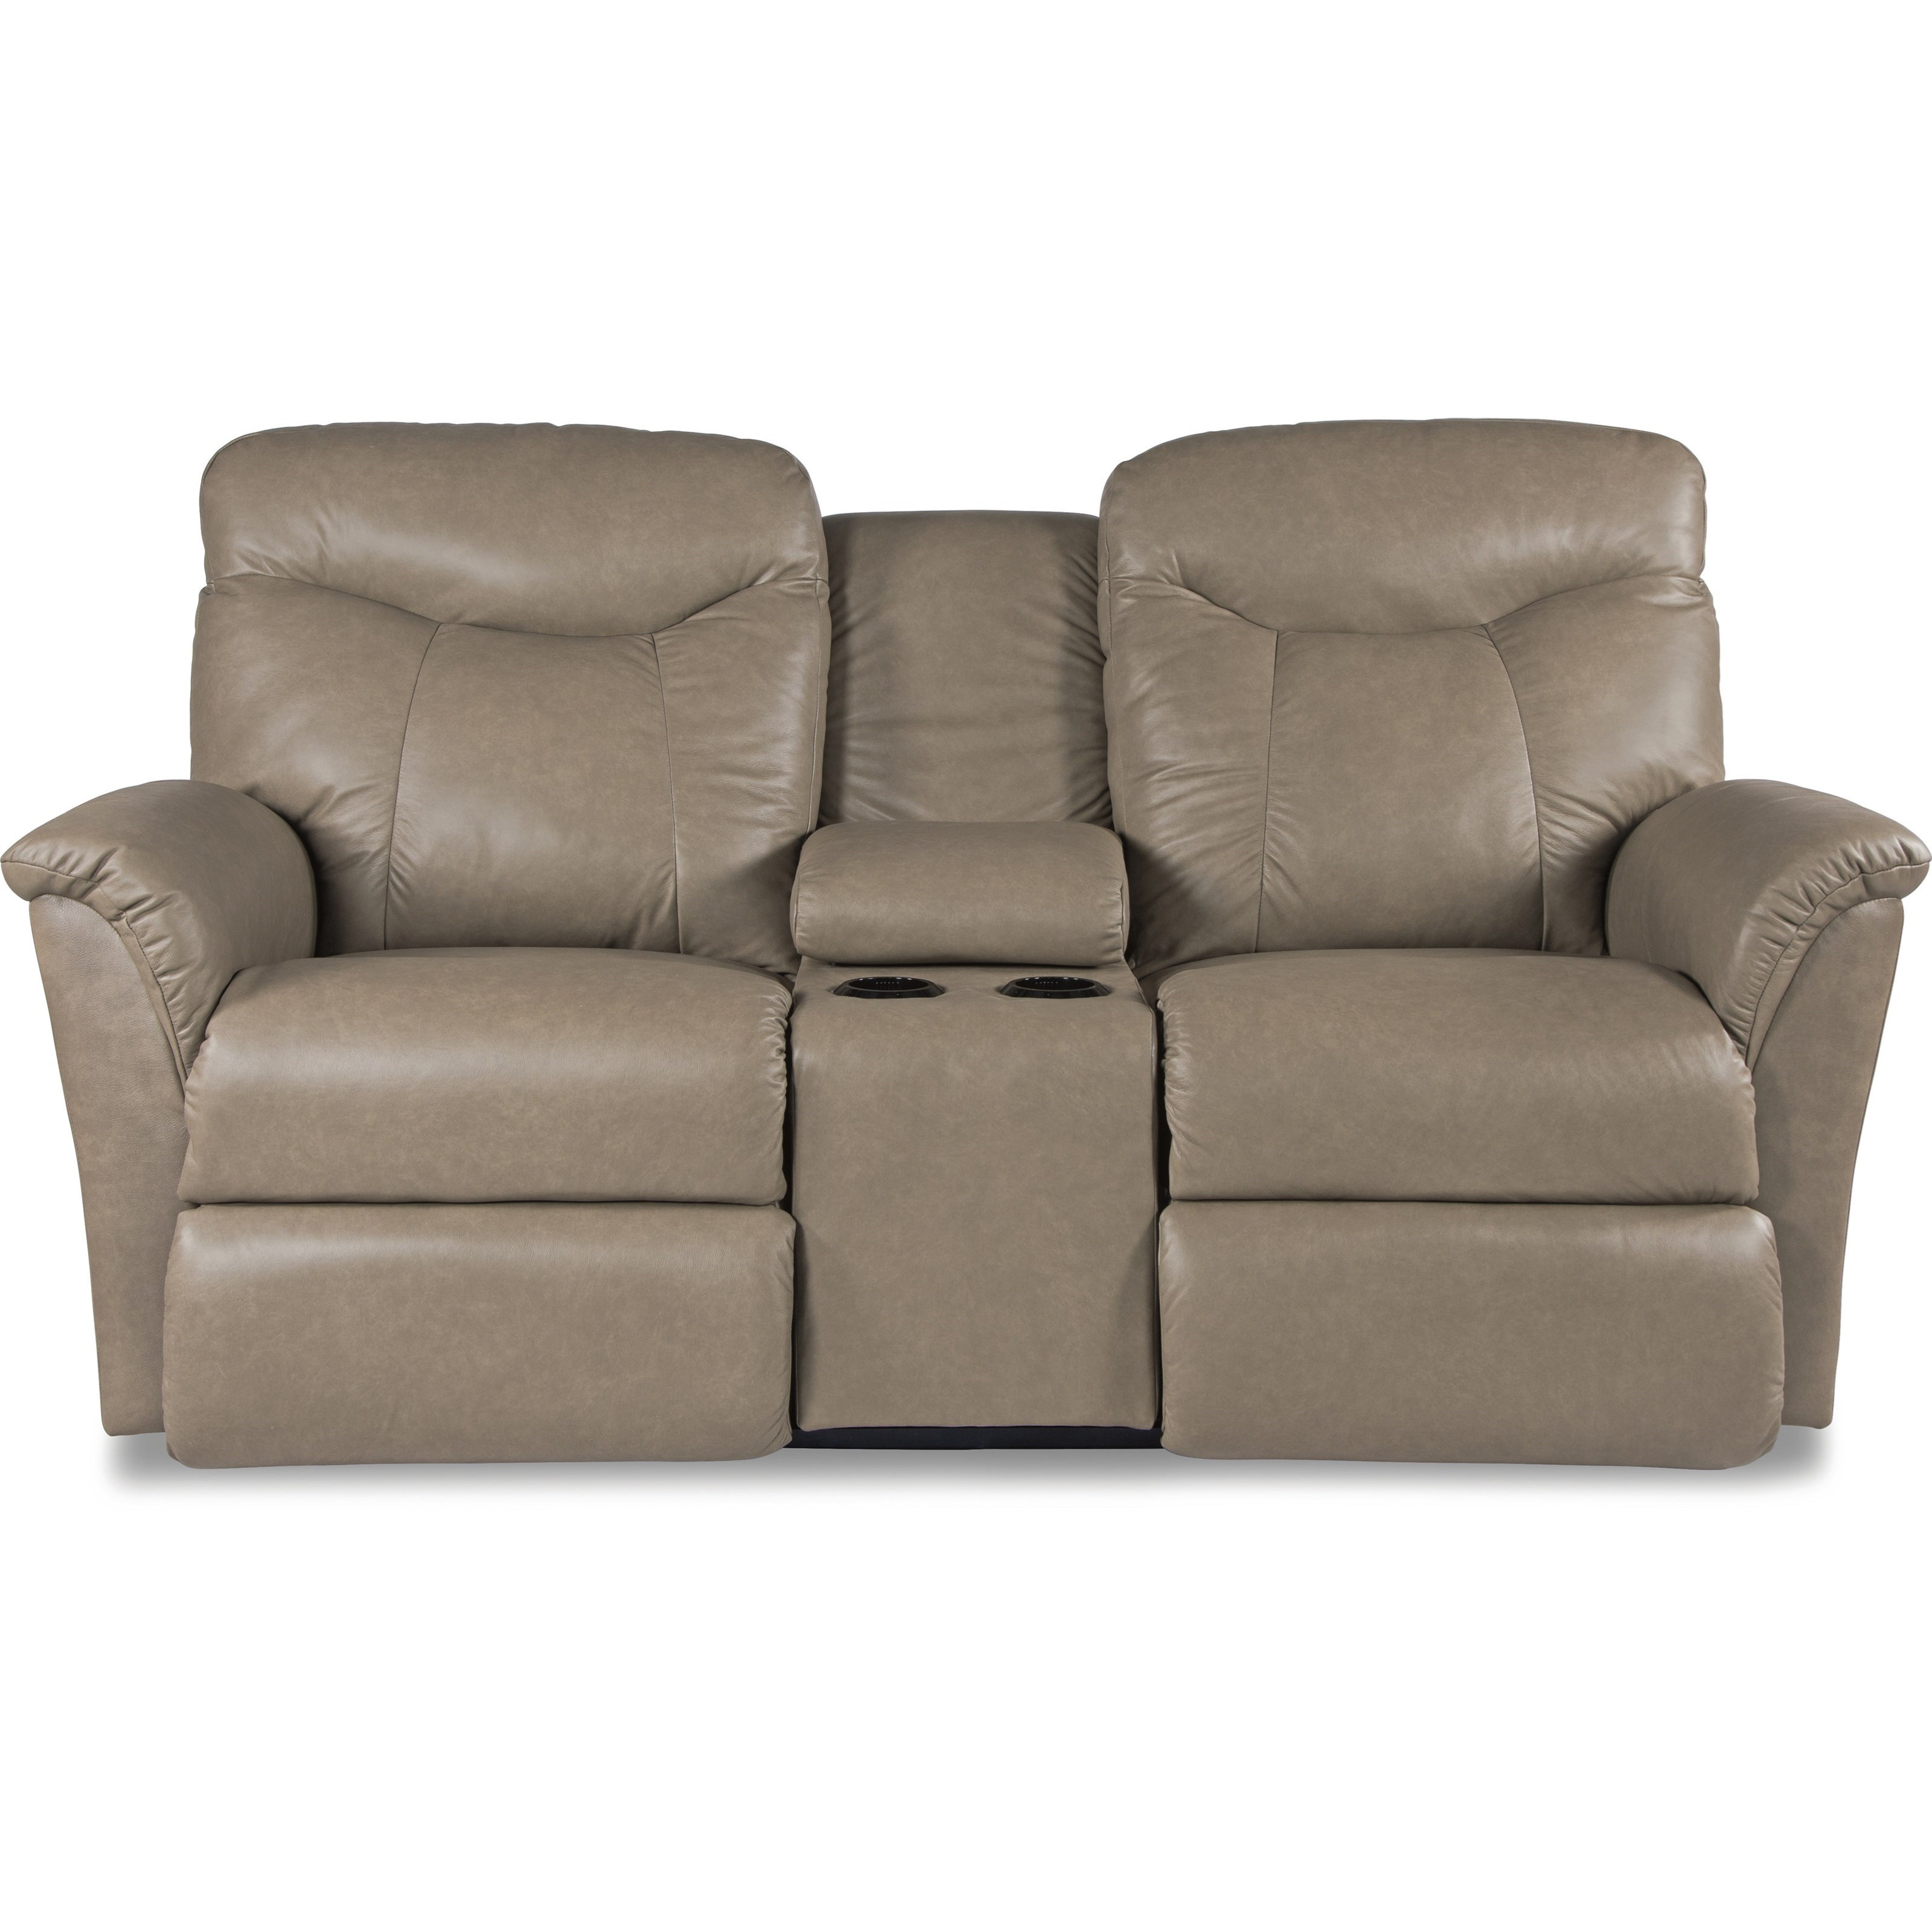 La Z Boy Fortune Casual Reclining Loveseat With Cupholders And Storage  Console   Great American Home Store   Reclining Love Seats